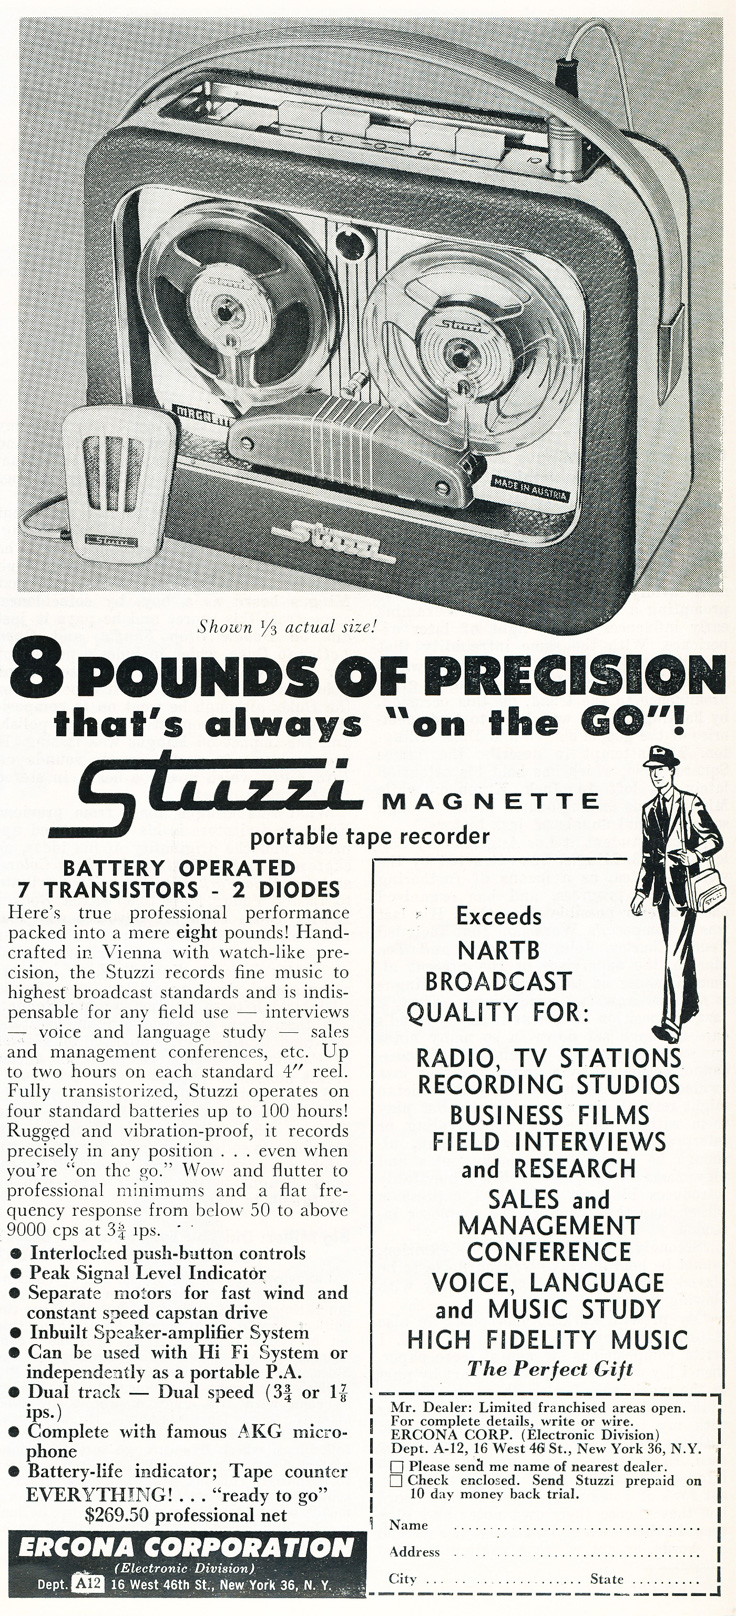 1959 ad for the Stuzzi reel to reel tape recorder in Phantom Productions' intage recording collection